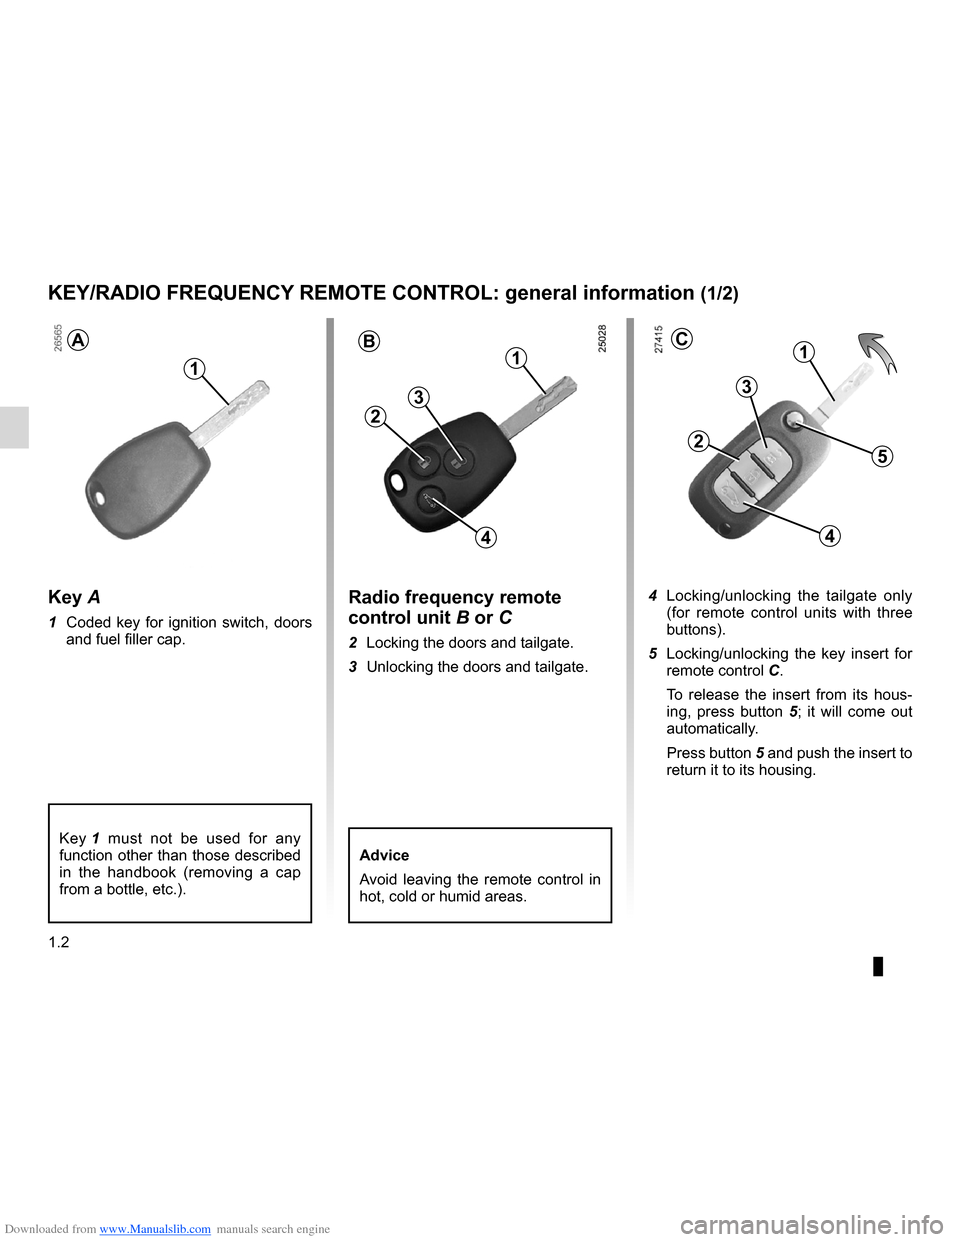 RENAULT CLIO 2012 X85 / 3.G Owners Manual, Page 8